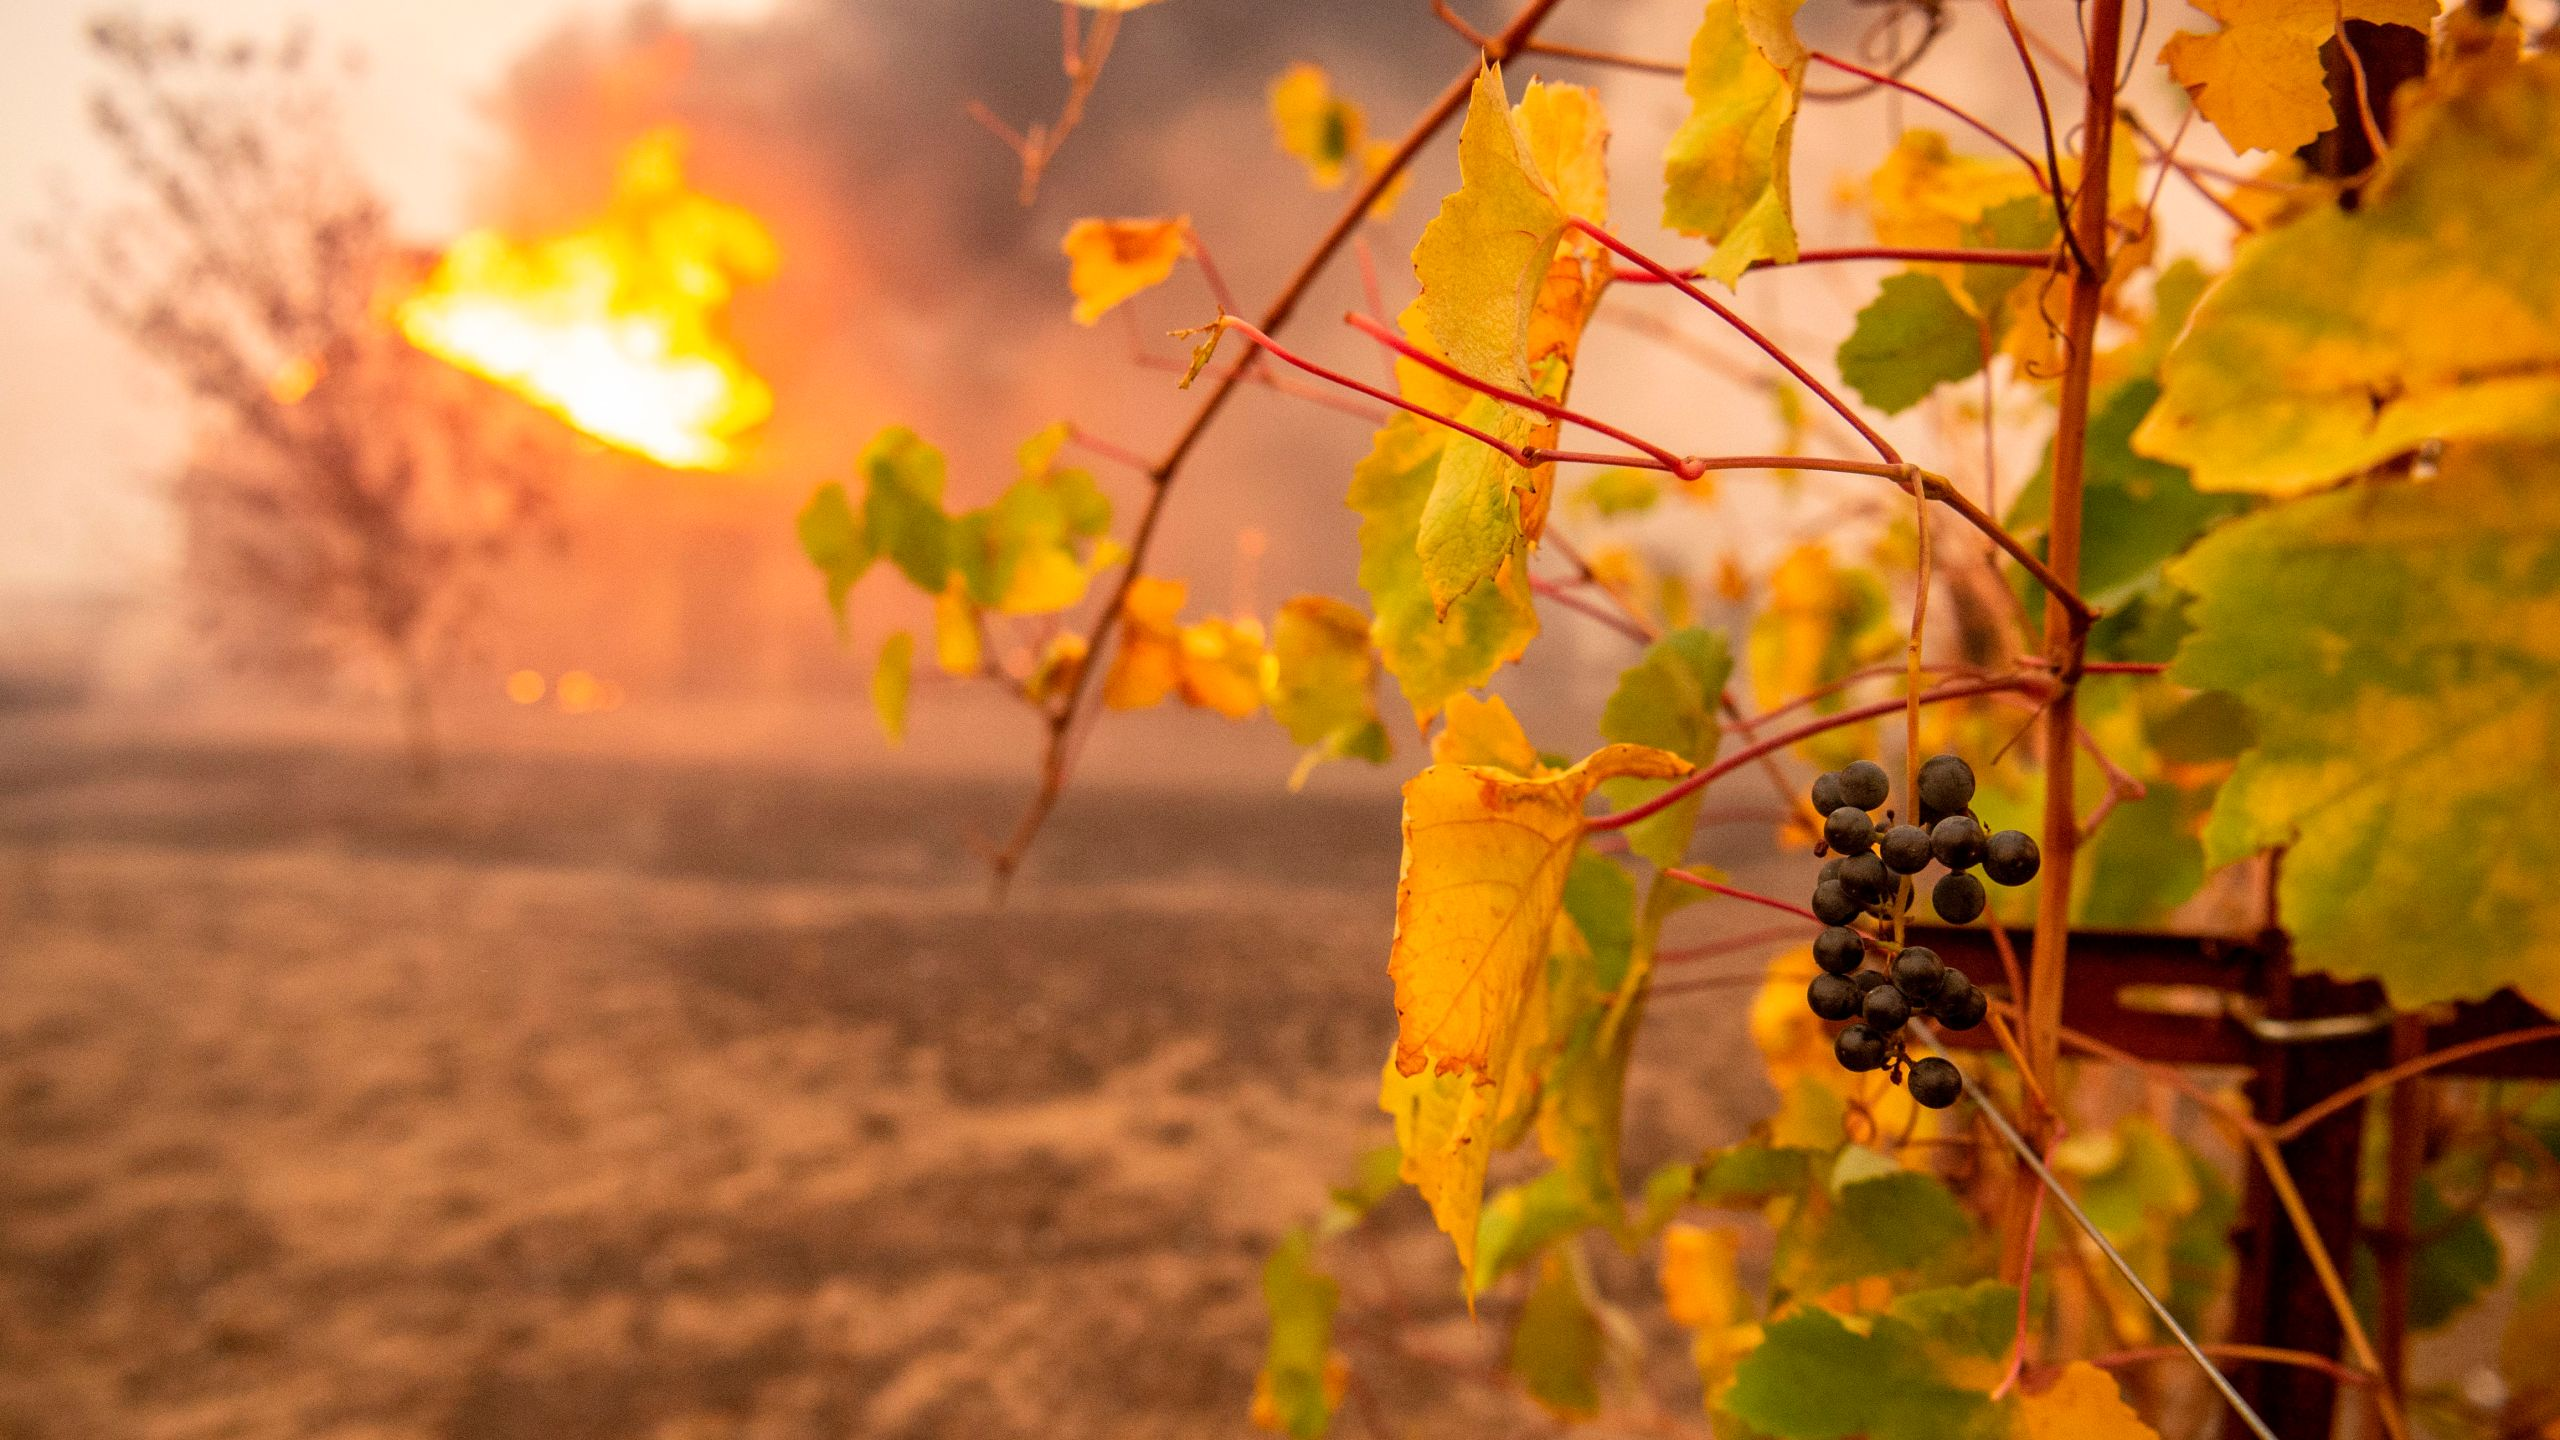 Partially charred grapes hang at a vineyard as a building burns during the Kincade Fire near Geyserville, California, on Oct. 24, 2019. (Credit: Josh Edelson /AFP via Getty Images)